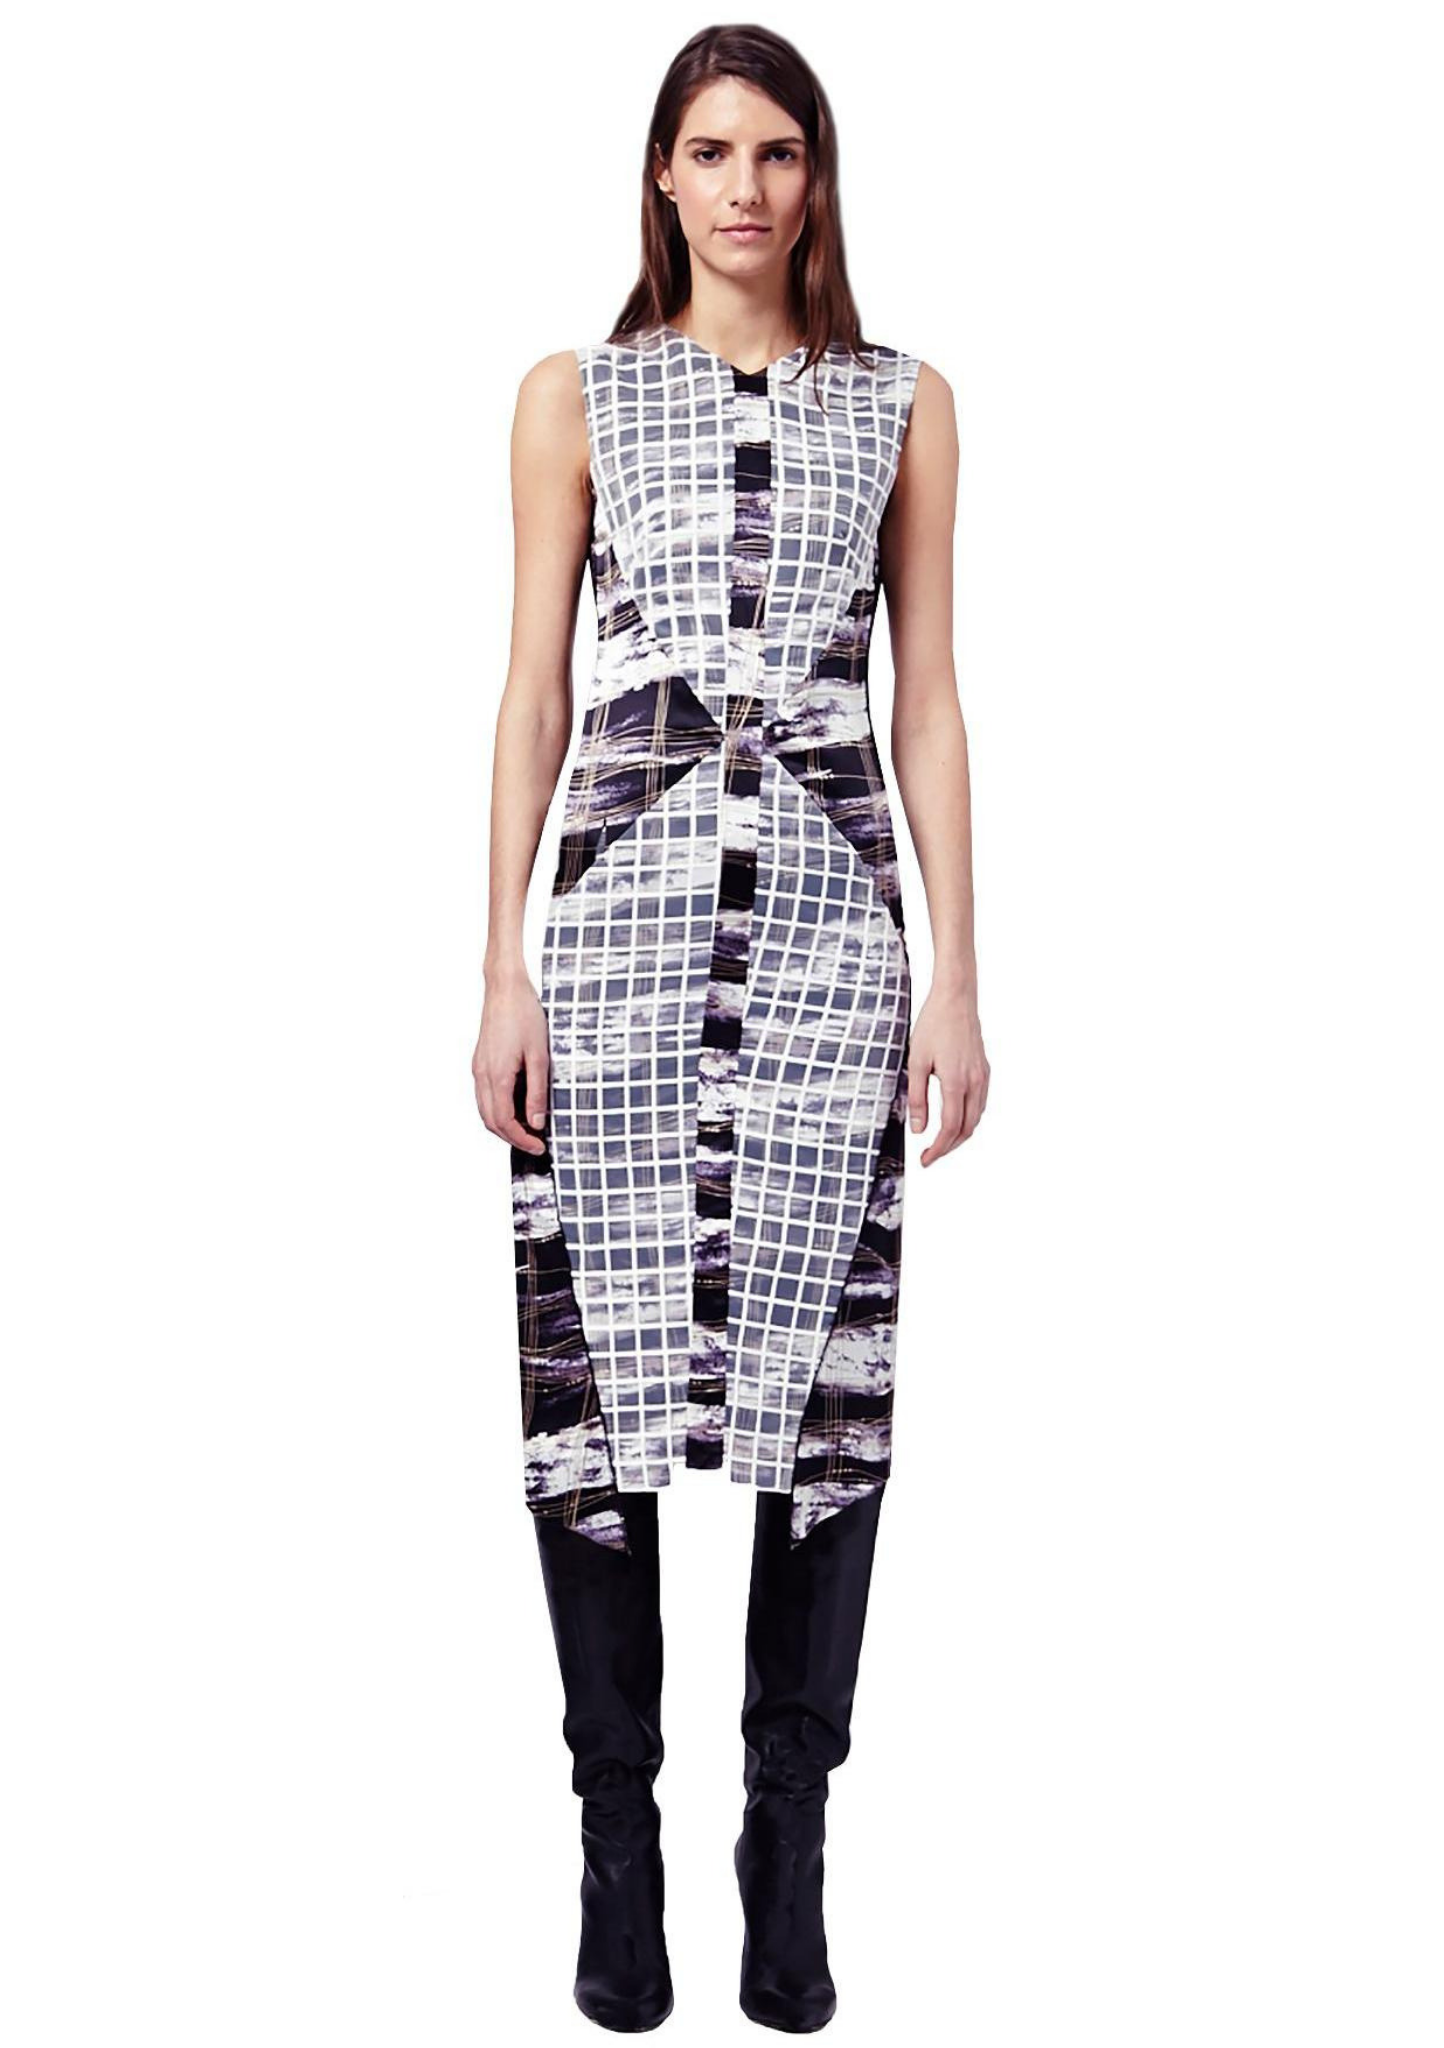 Graphic monochrome print, sleeveless and over the knee, pencil shape dress